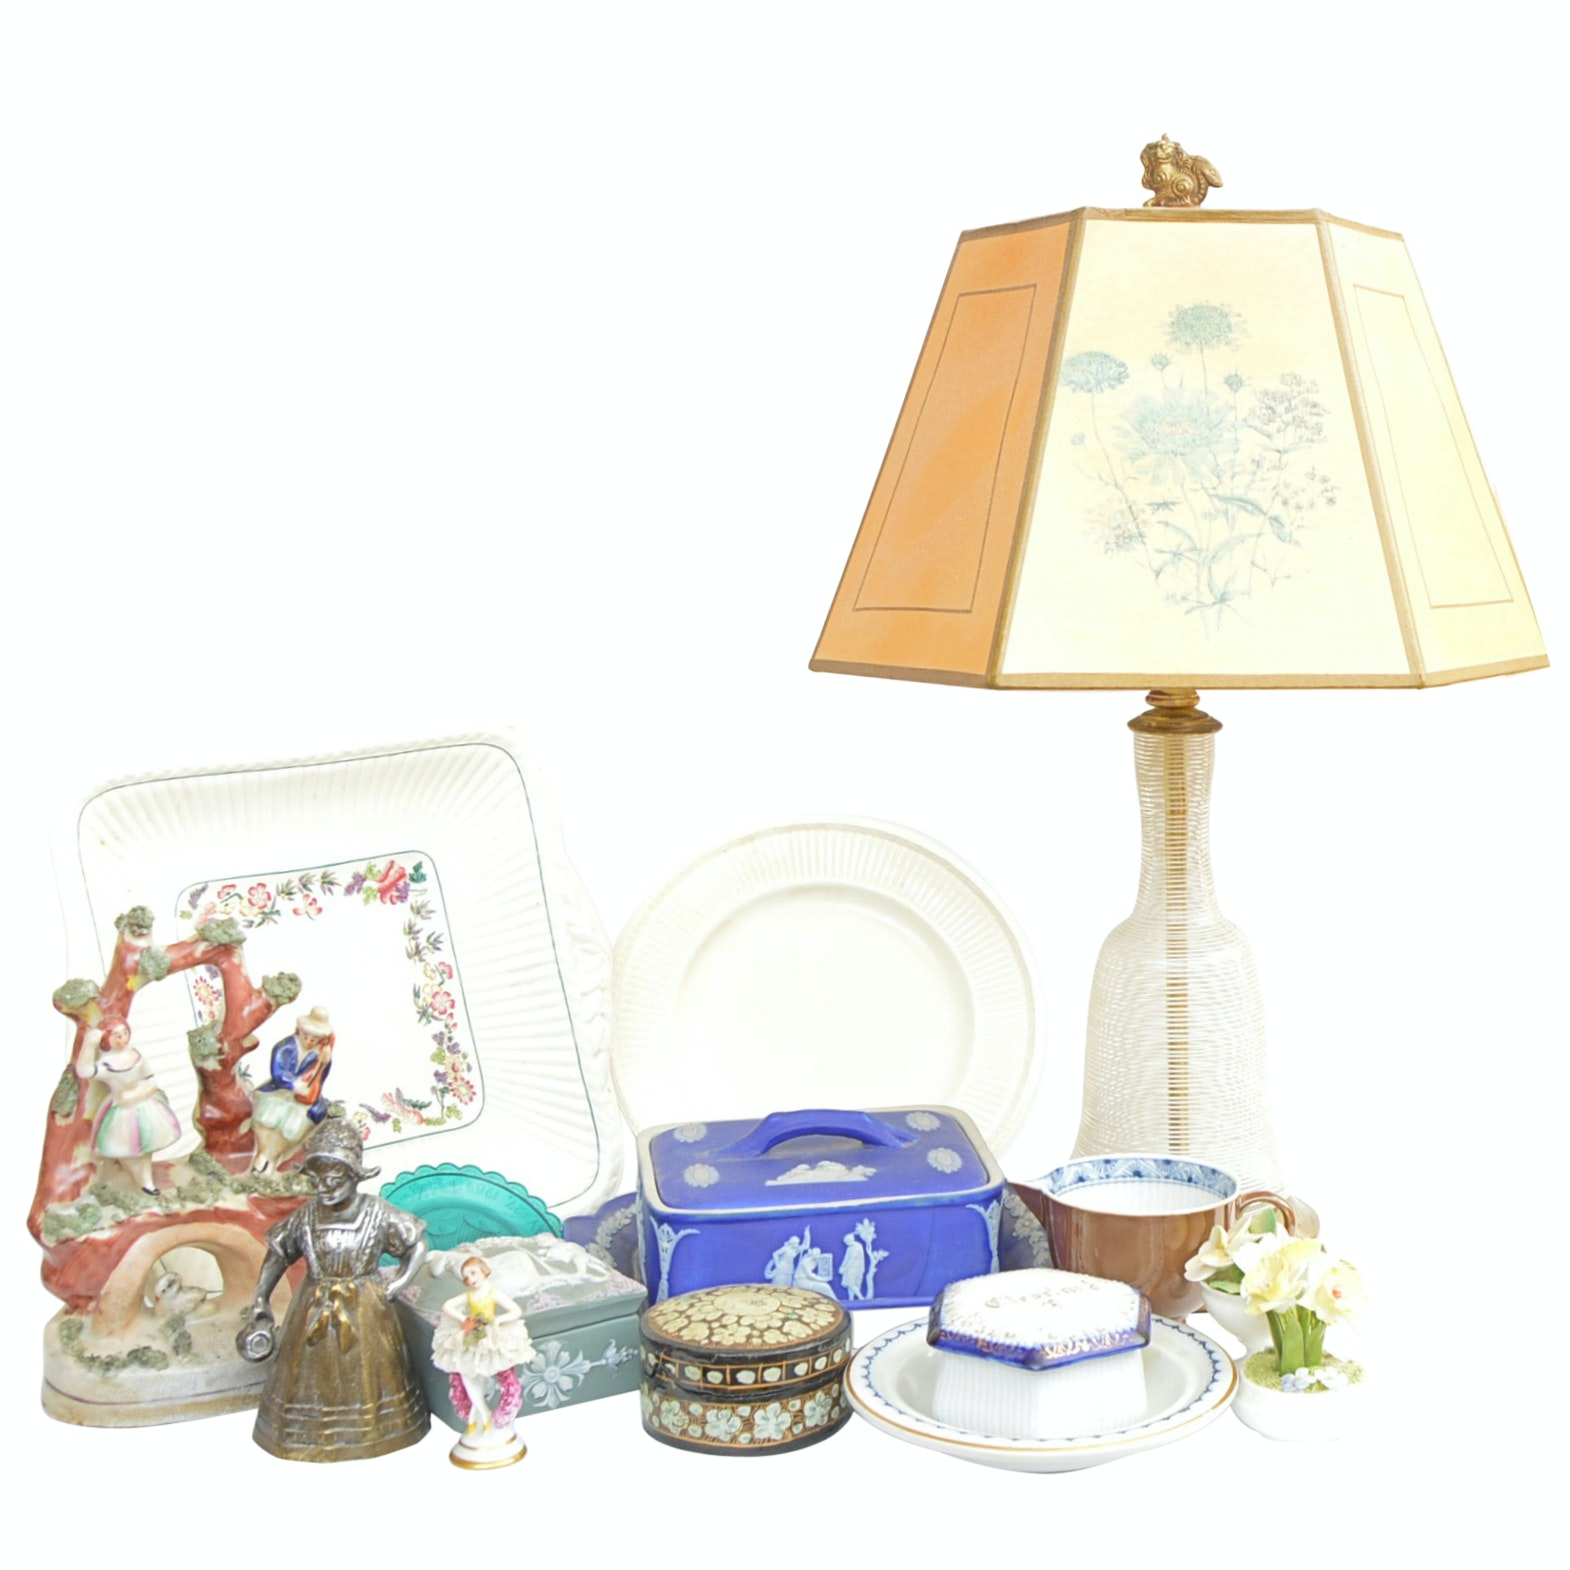 Antique and Vintage Decor including Wedgwood, Staffordshire and Glass Lamp